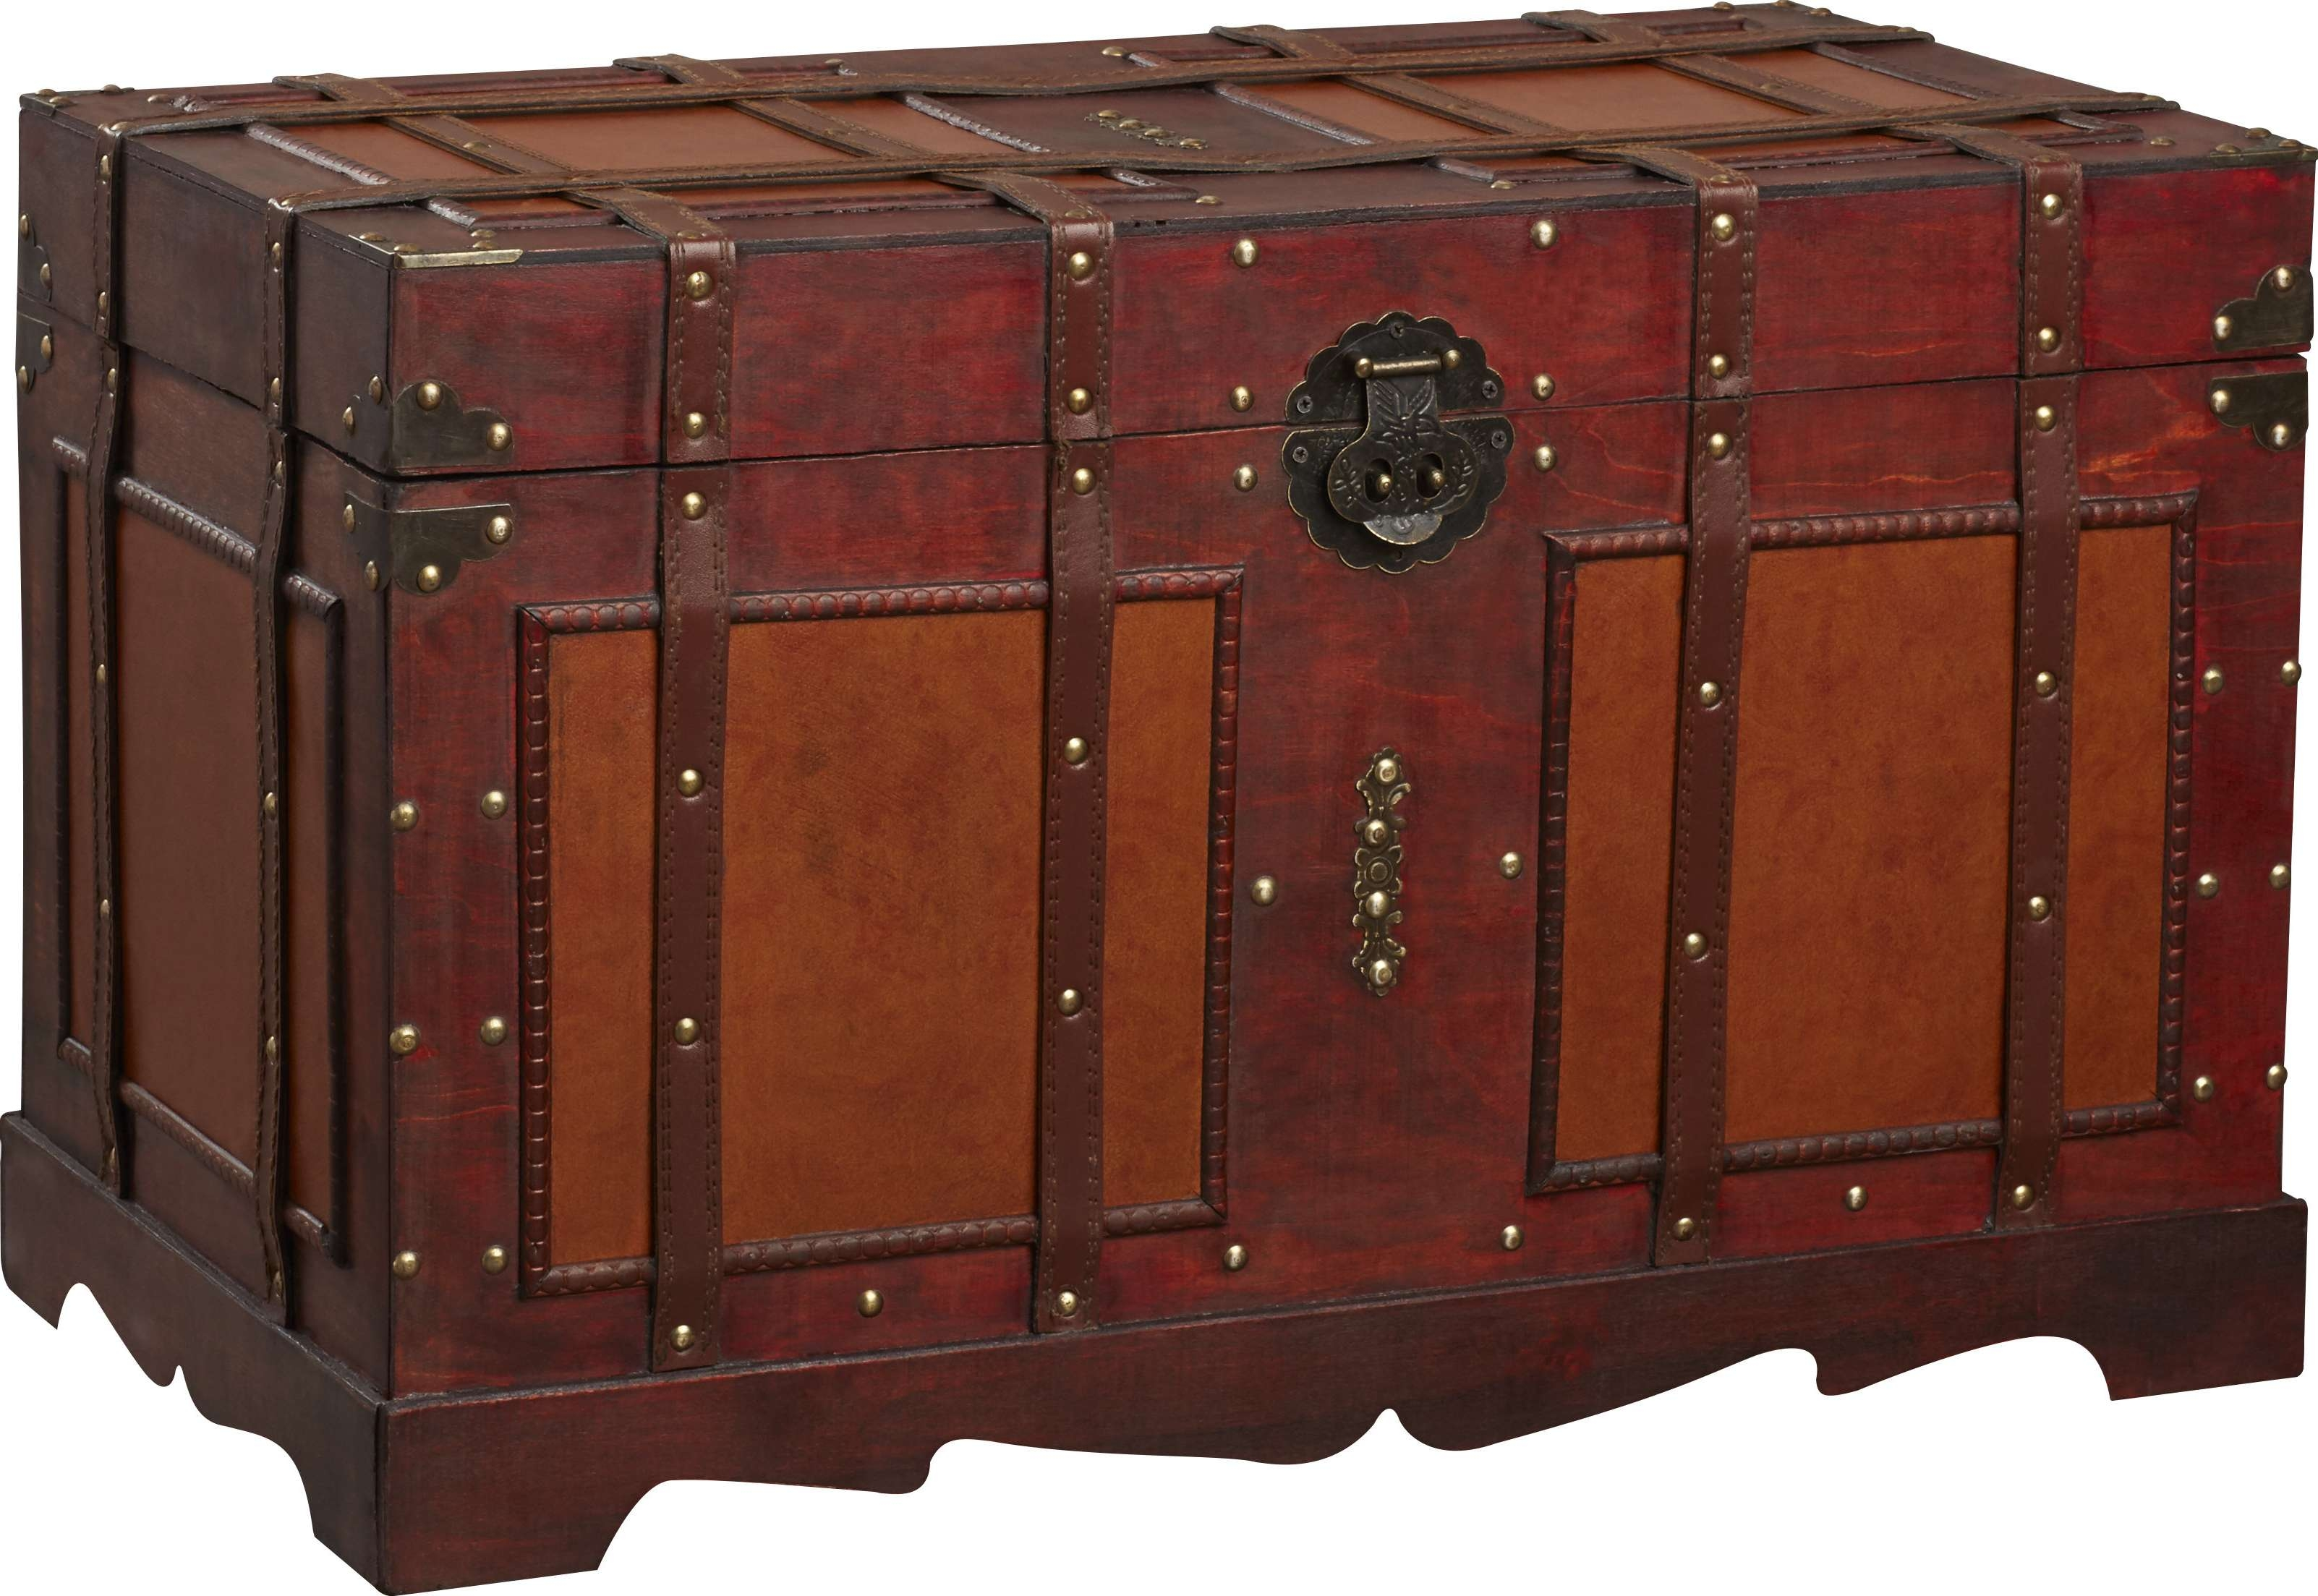 decorative vintage storage rustic steamer wooden trunks decor travel chest trunk coffee vinterior table listings